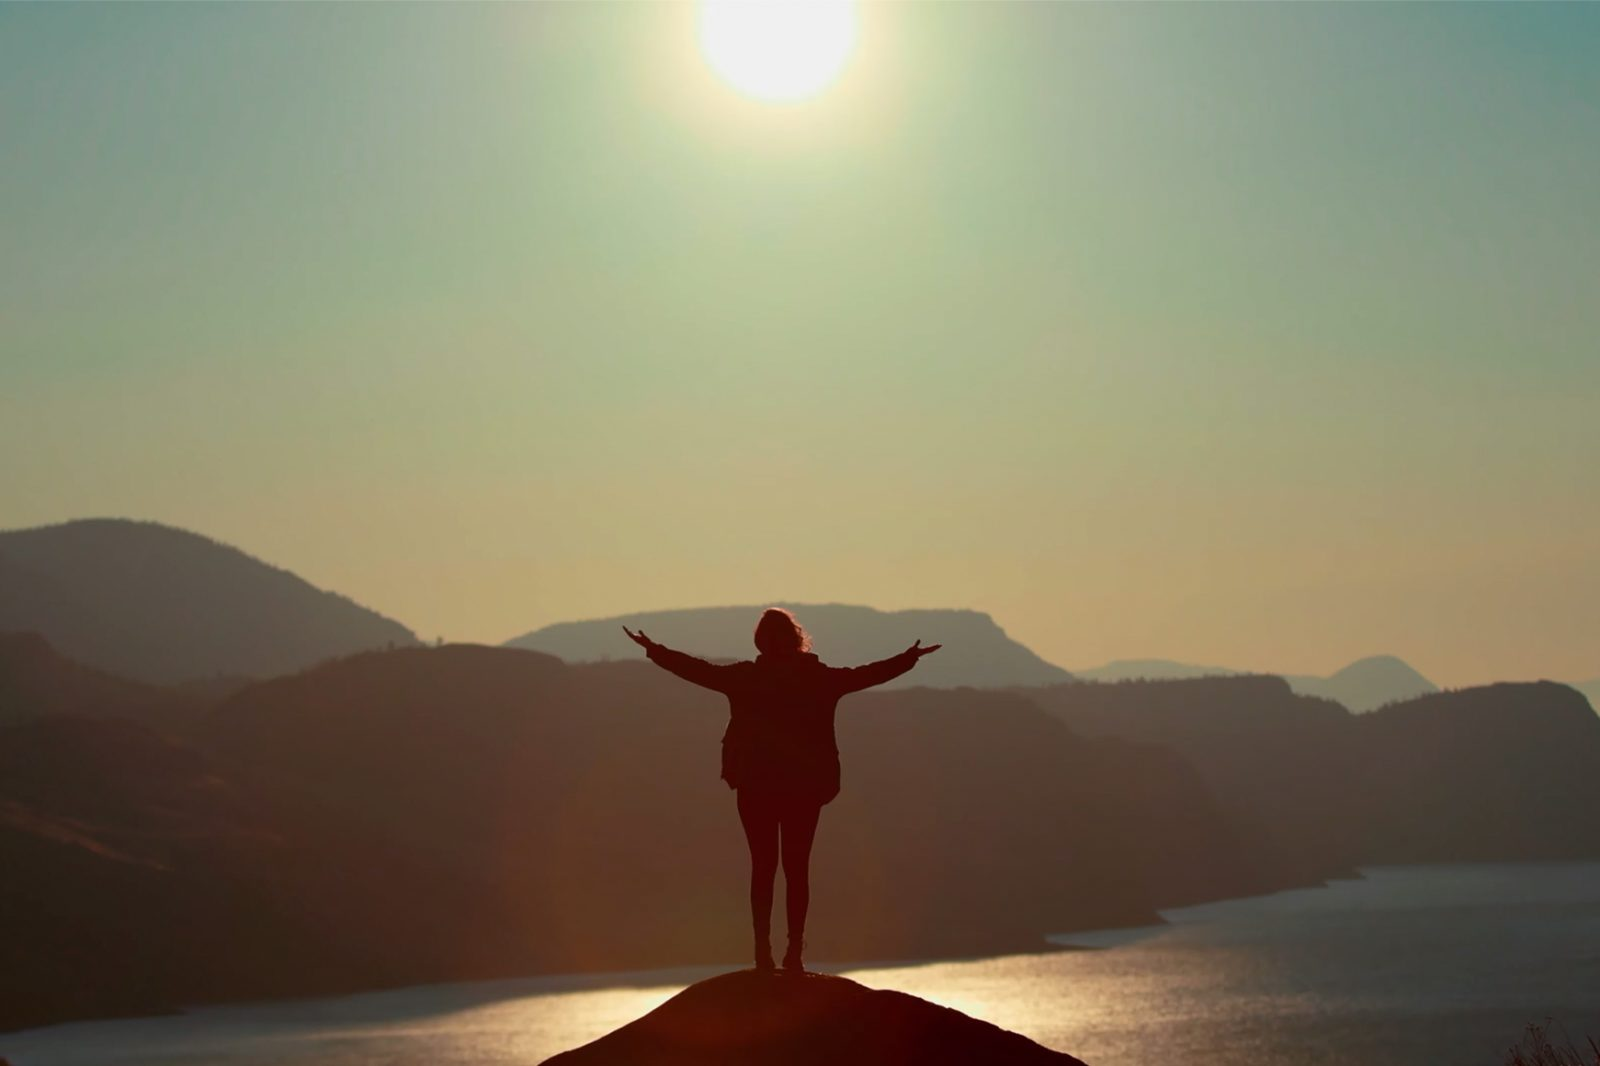 person standing on a mountain top